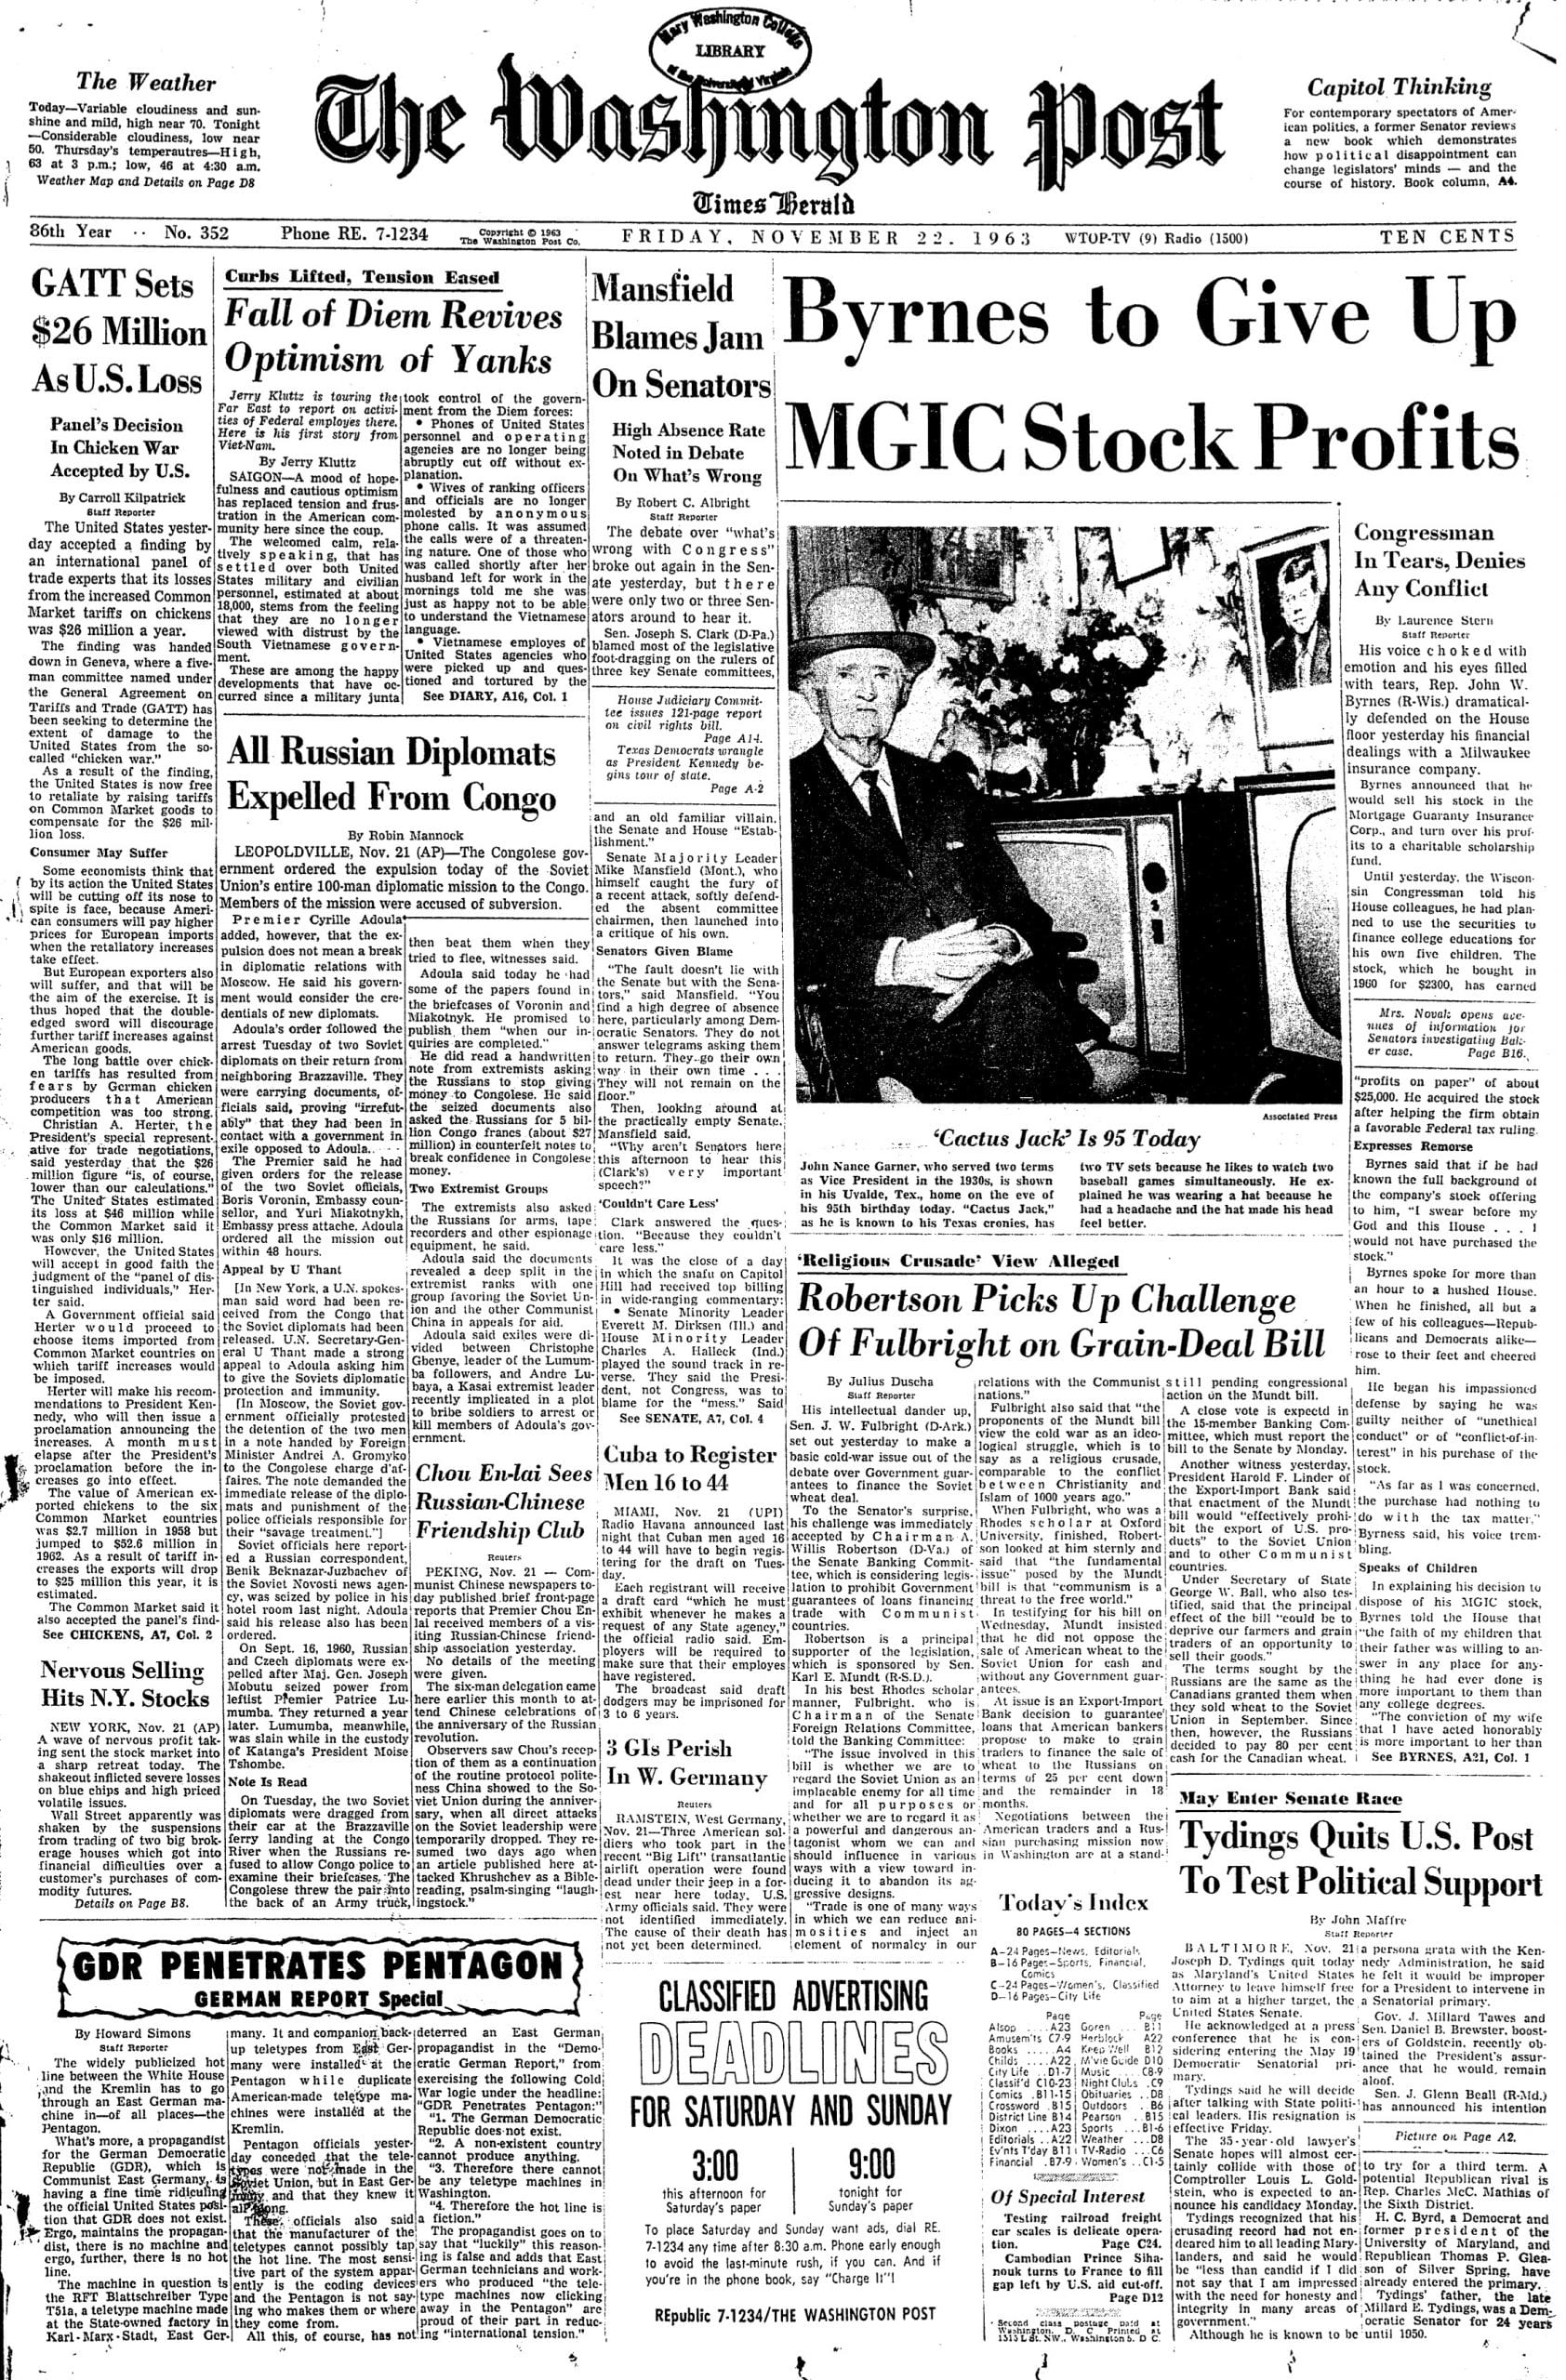 front page of the Washington Post on November 22nd, 1963